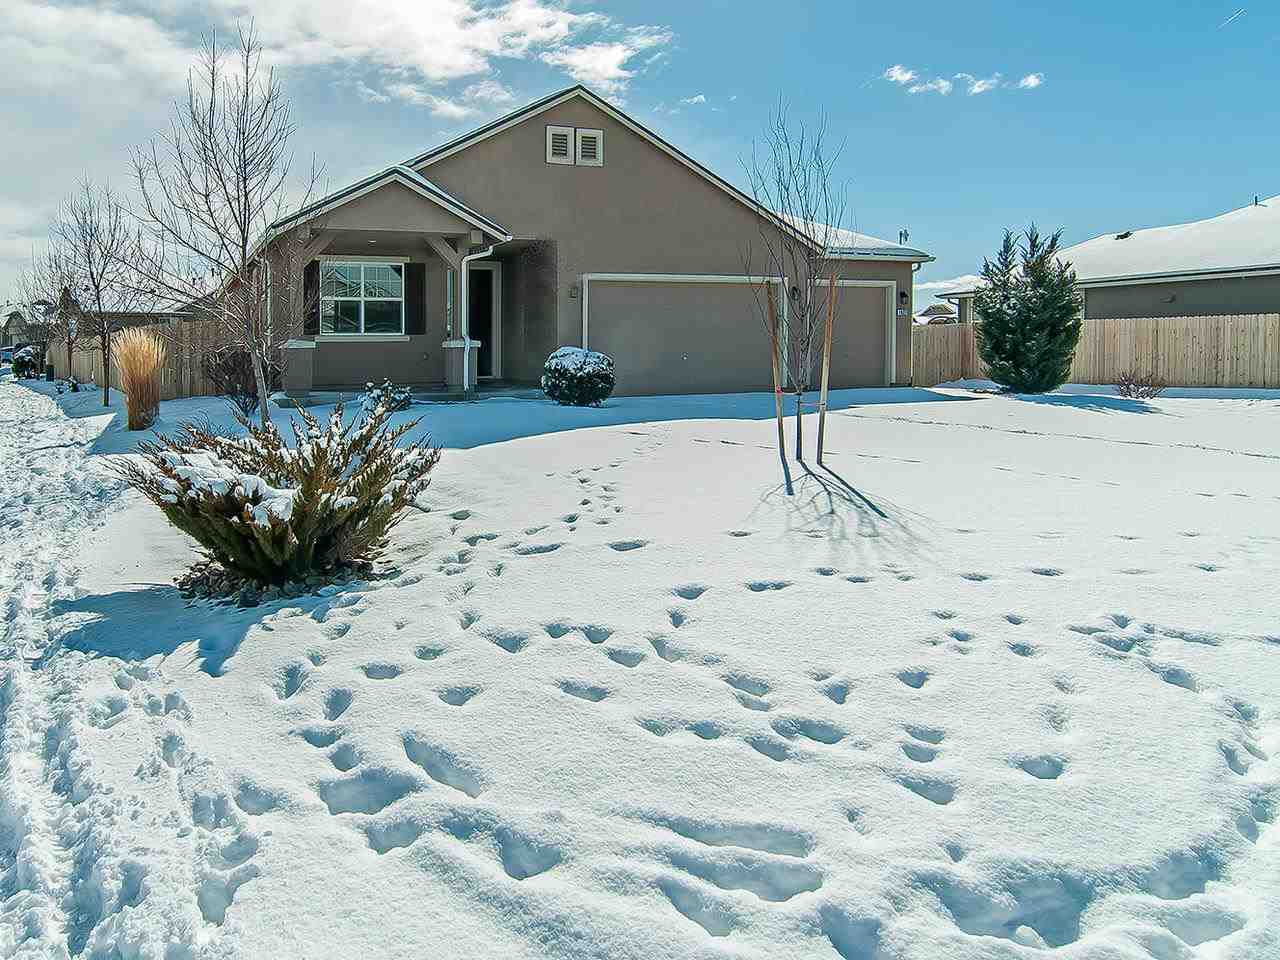 1527 Snaffle Bit Drive Gardnerville, NV 89410 | MLS 190001637 Photo 1